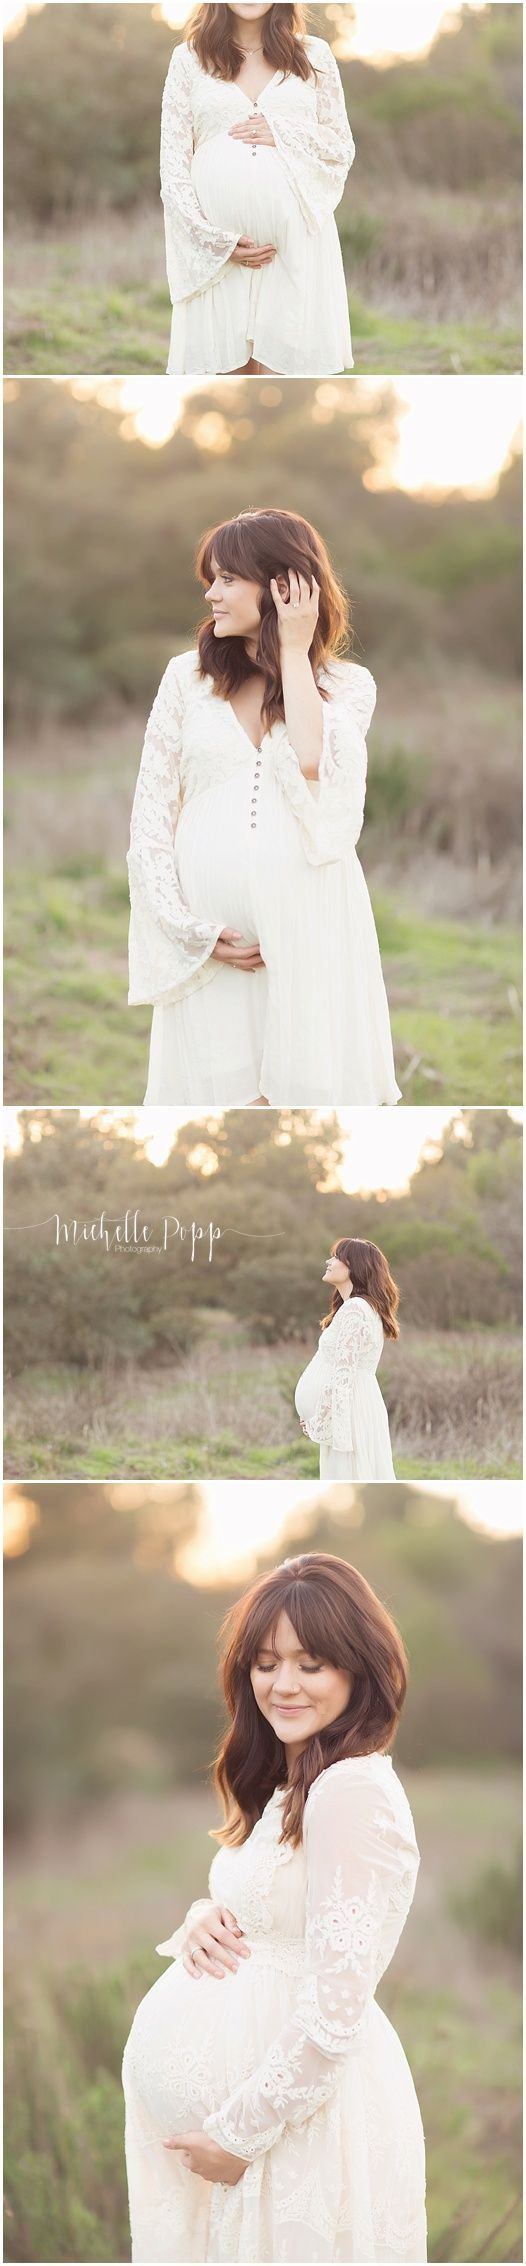 San Diego Maternity Photographer | maternity photos. field, maternity photography. #Maternity #photography